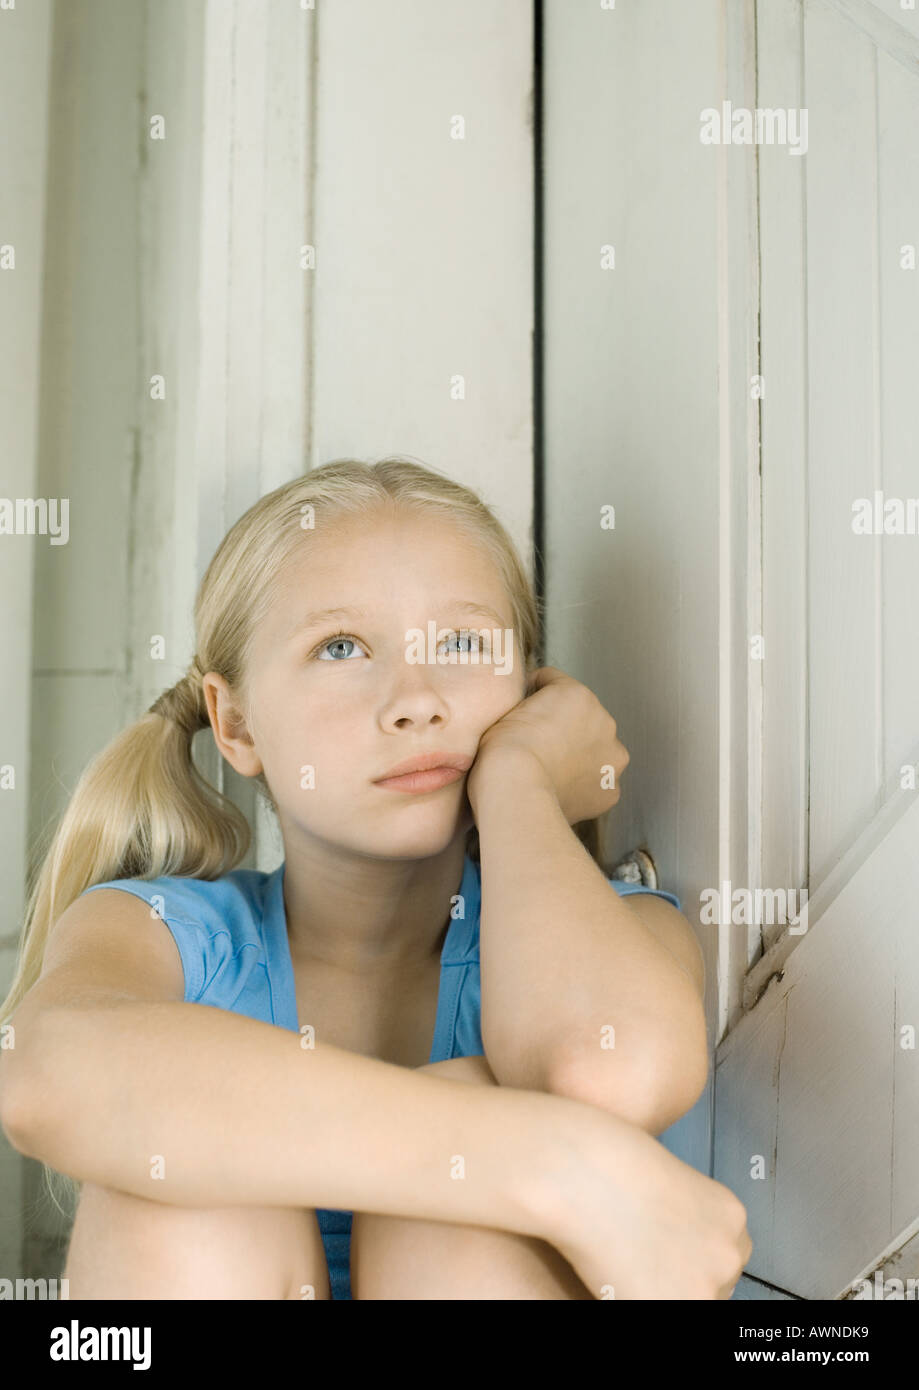 Girl holding head, looking up - Stock Image